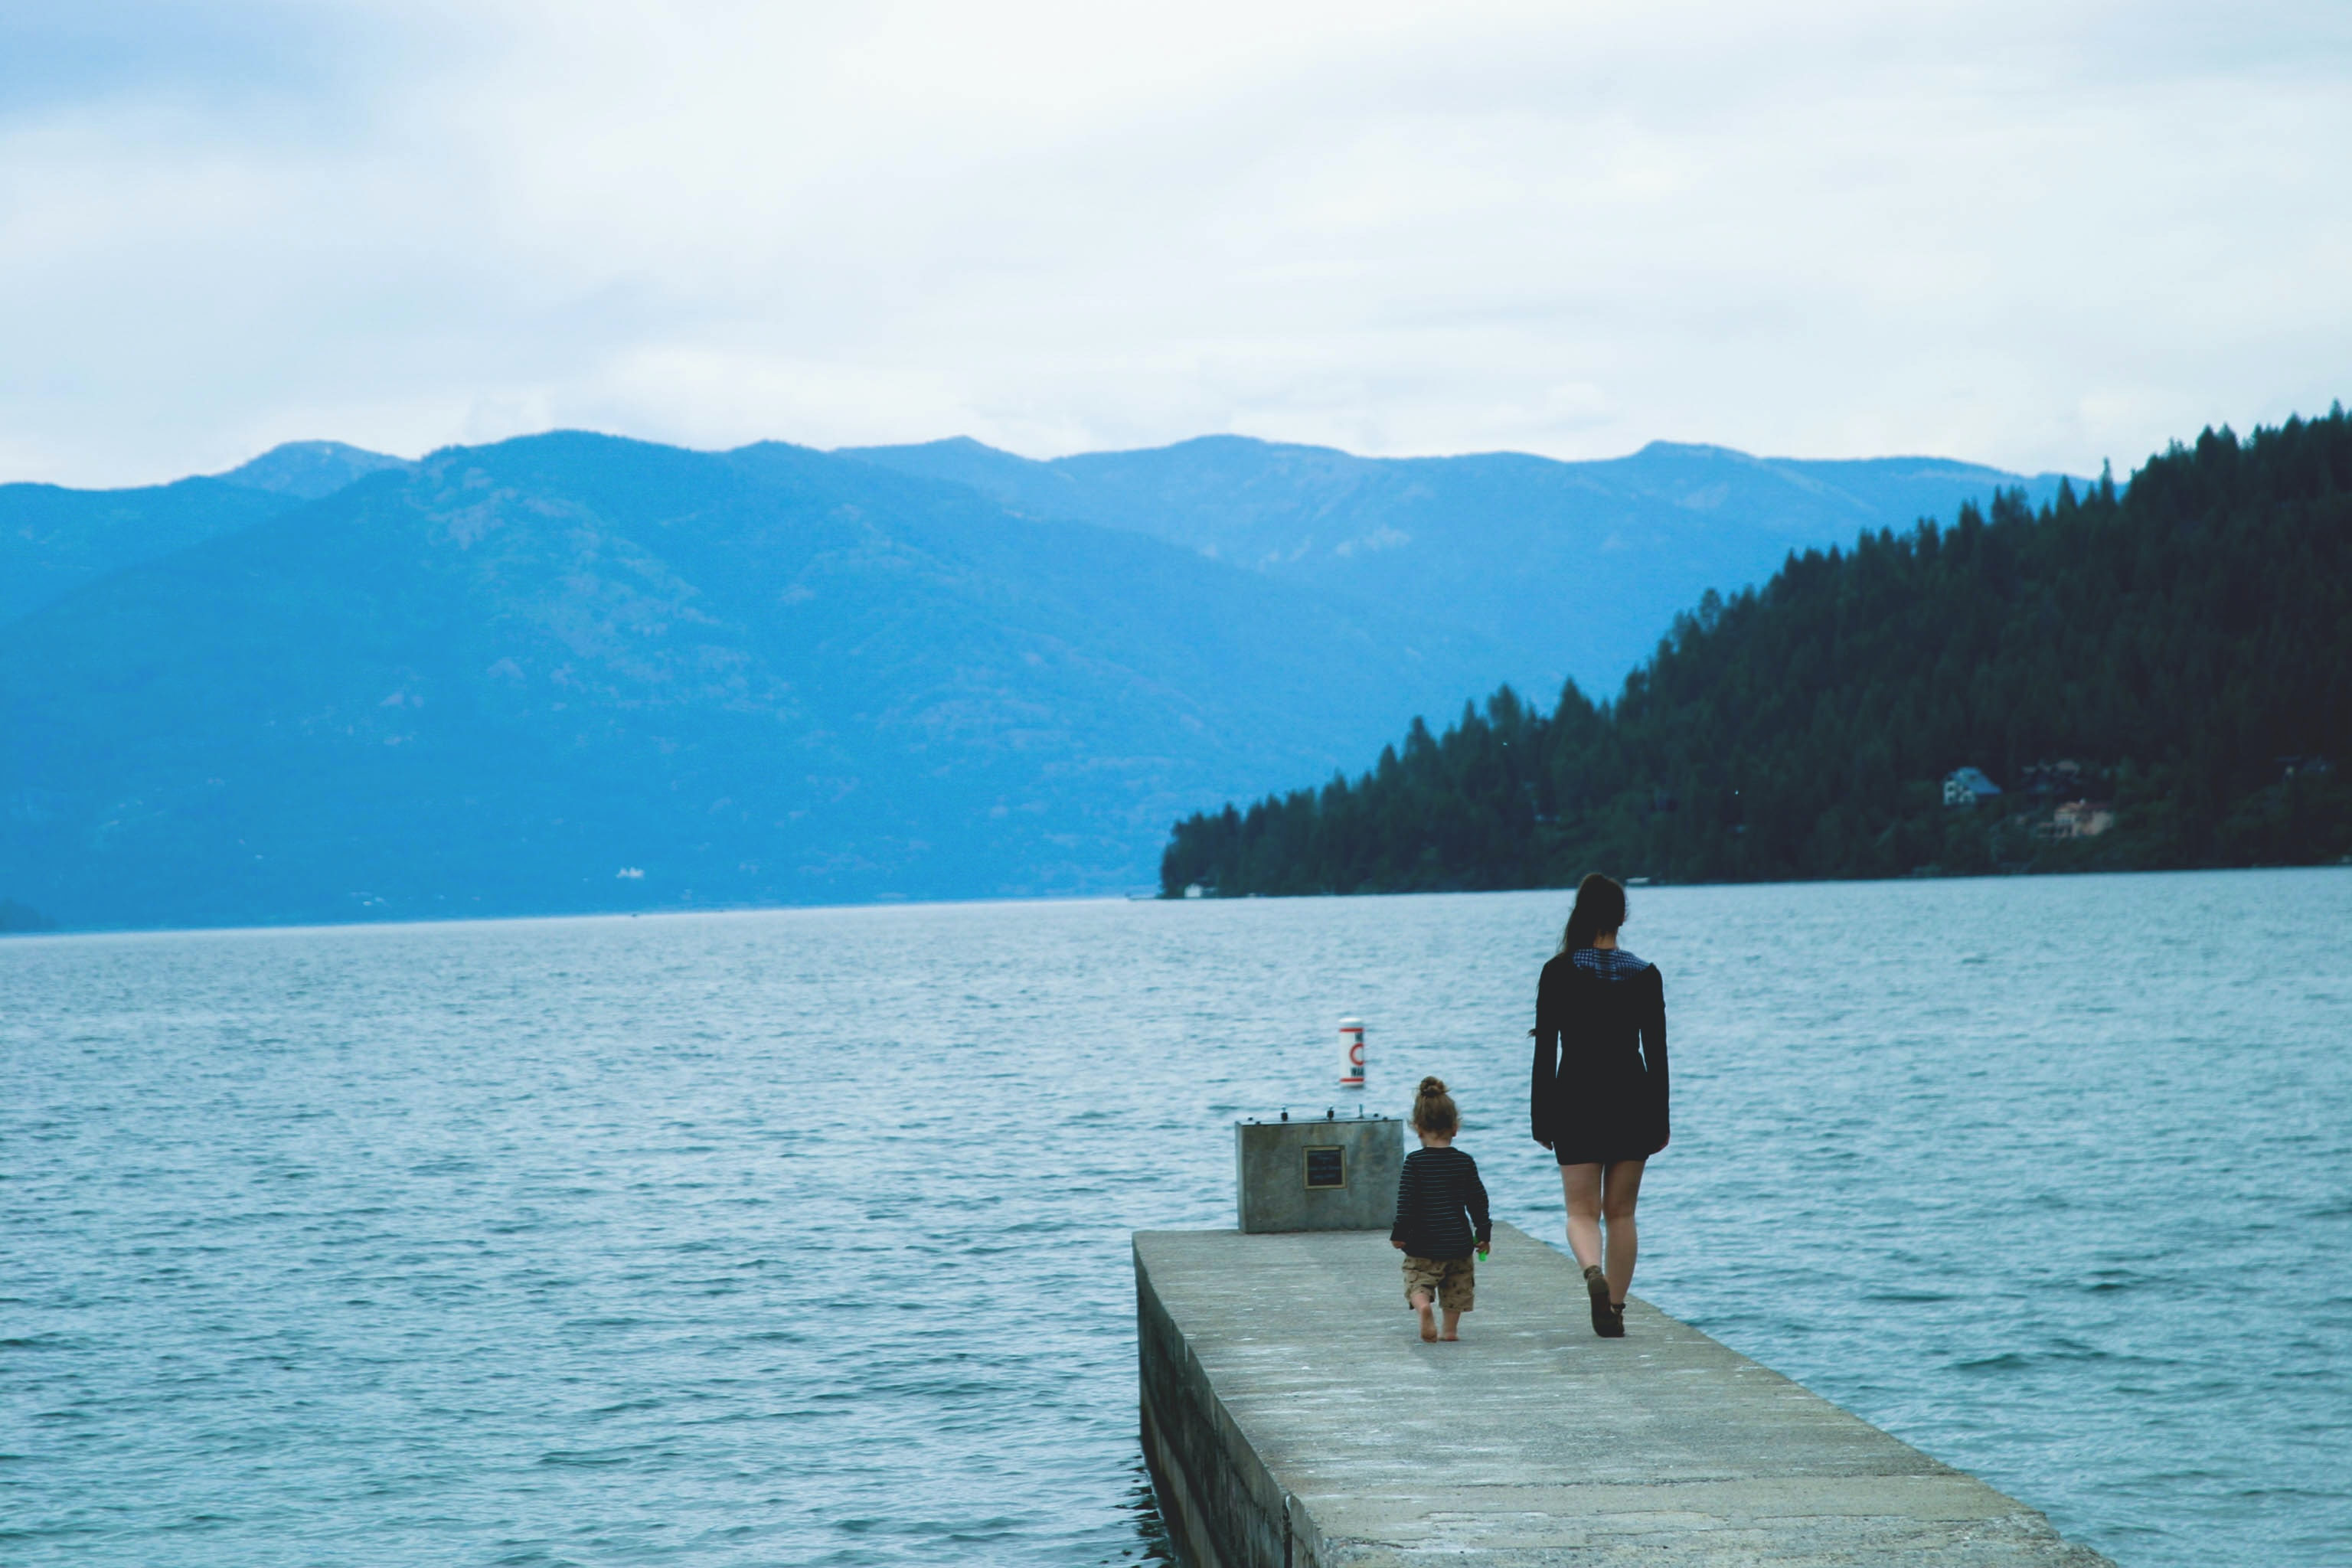 woman and girl walking along concrete dock surrounded by body of water